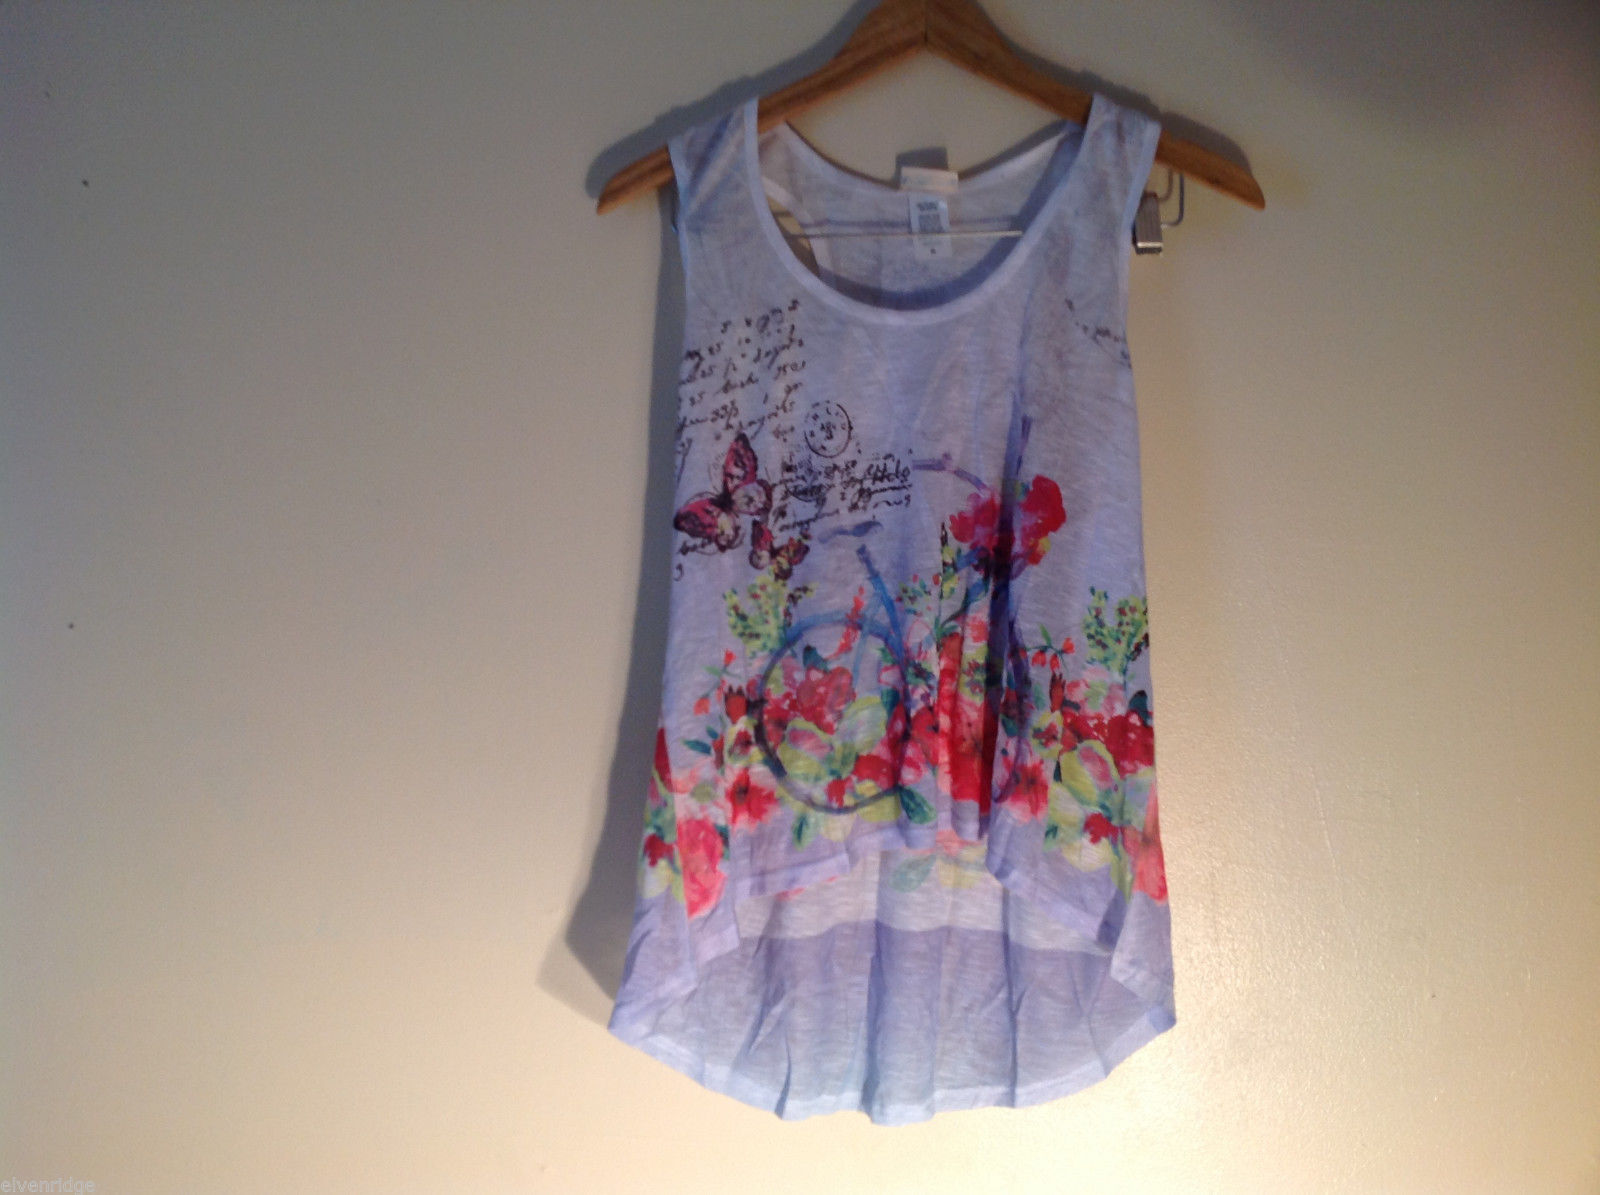 NEW Womens Sunshirt Light Lavender Tank Top Size XL Made in USA